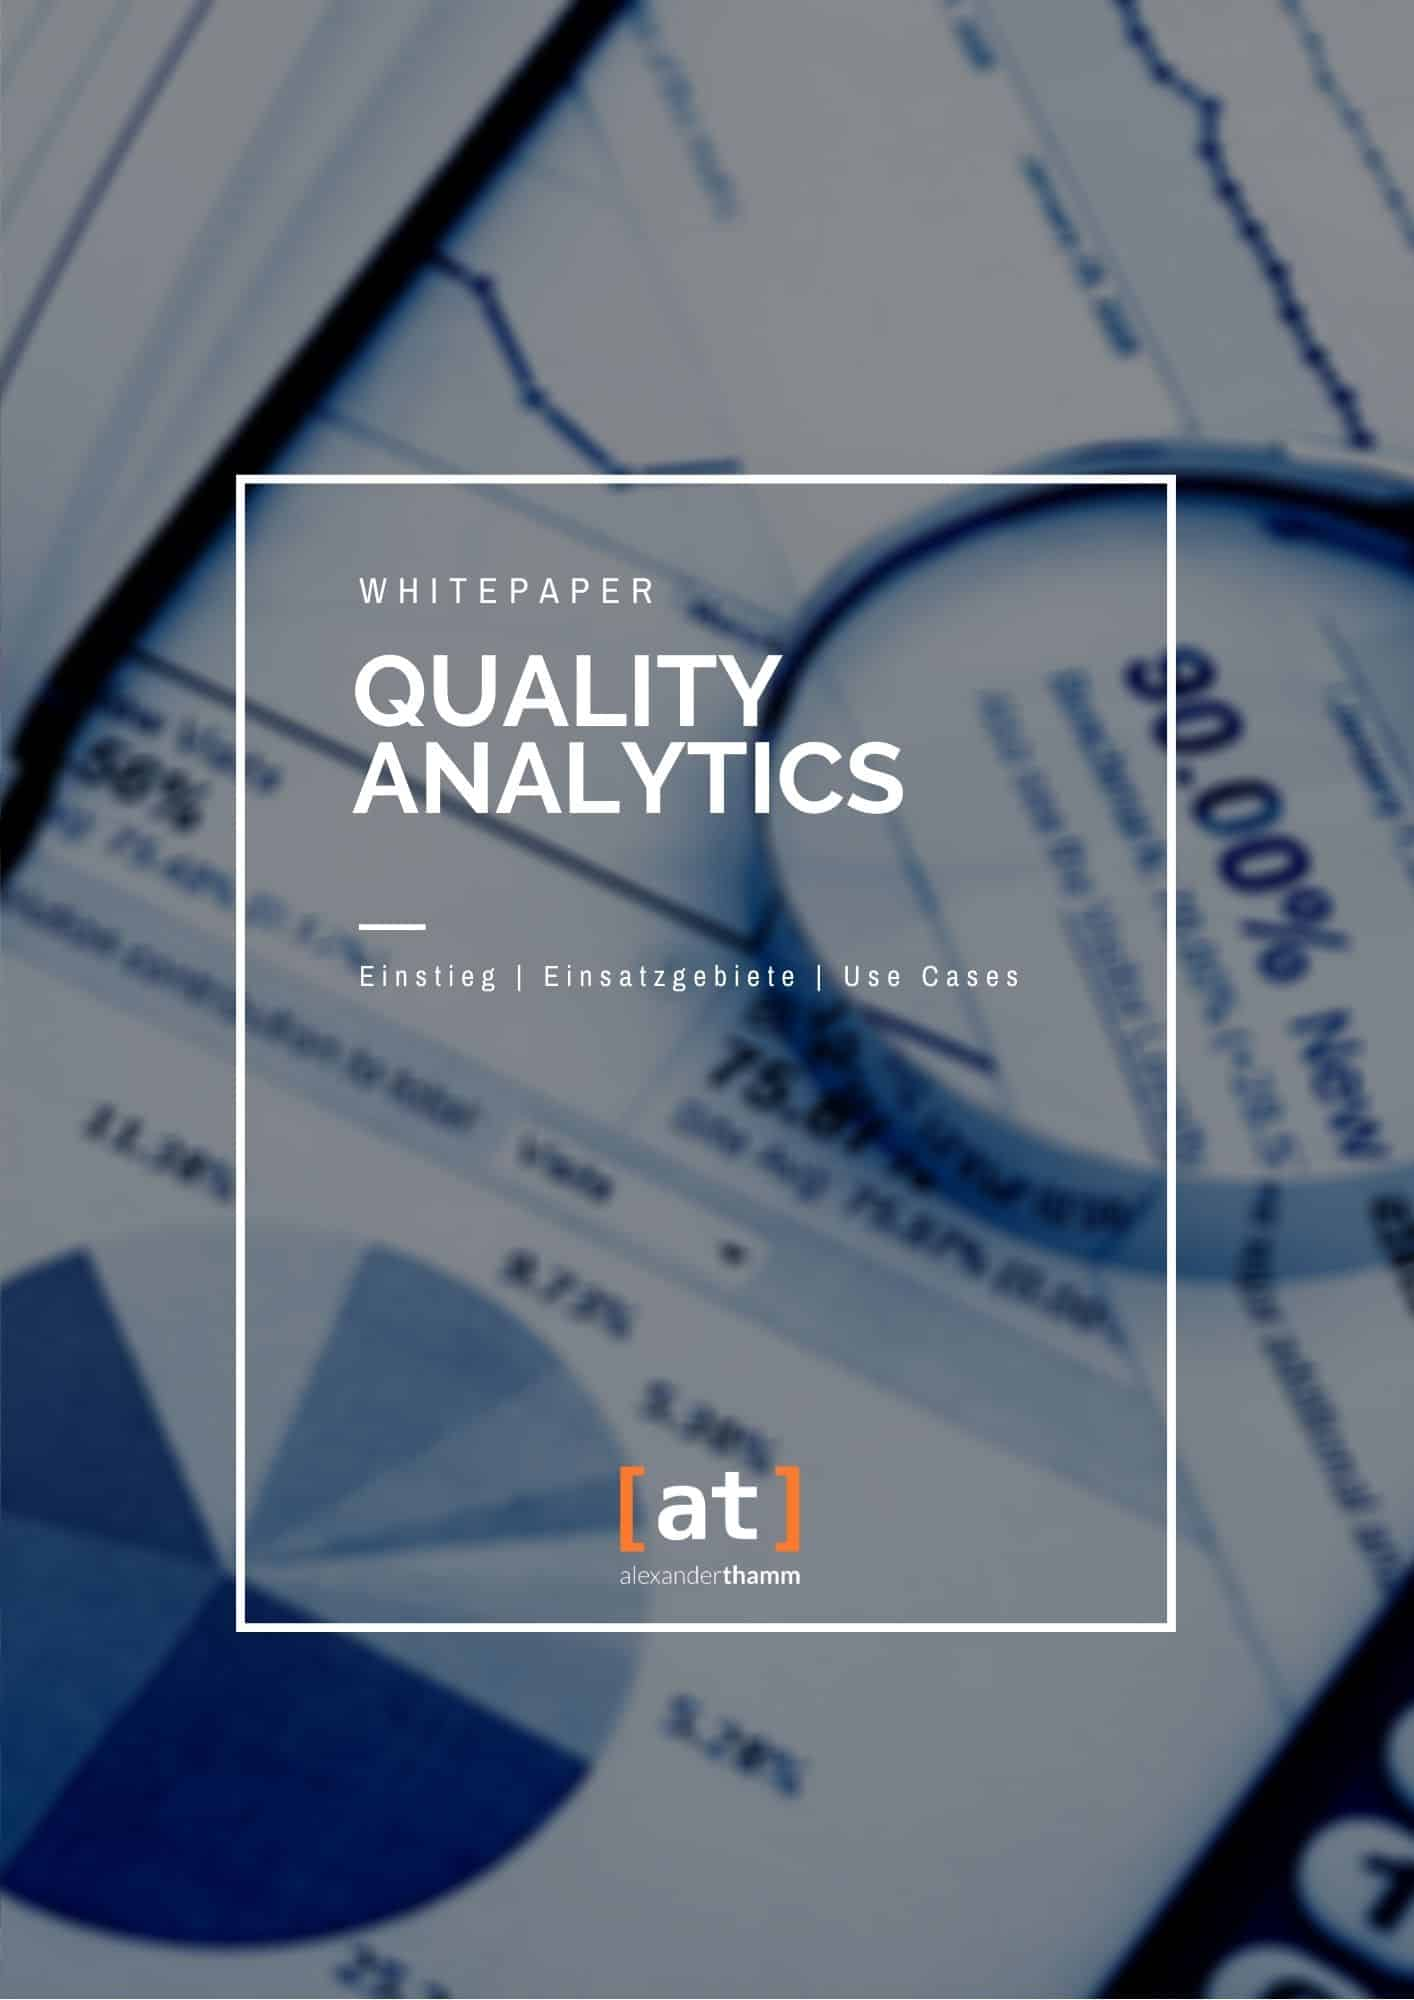 Whiteapaper_ Quality Analytics